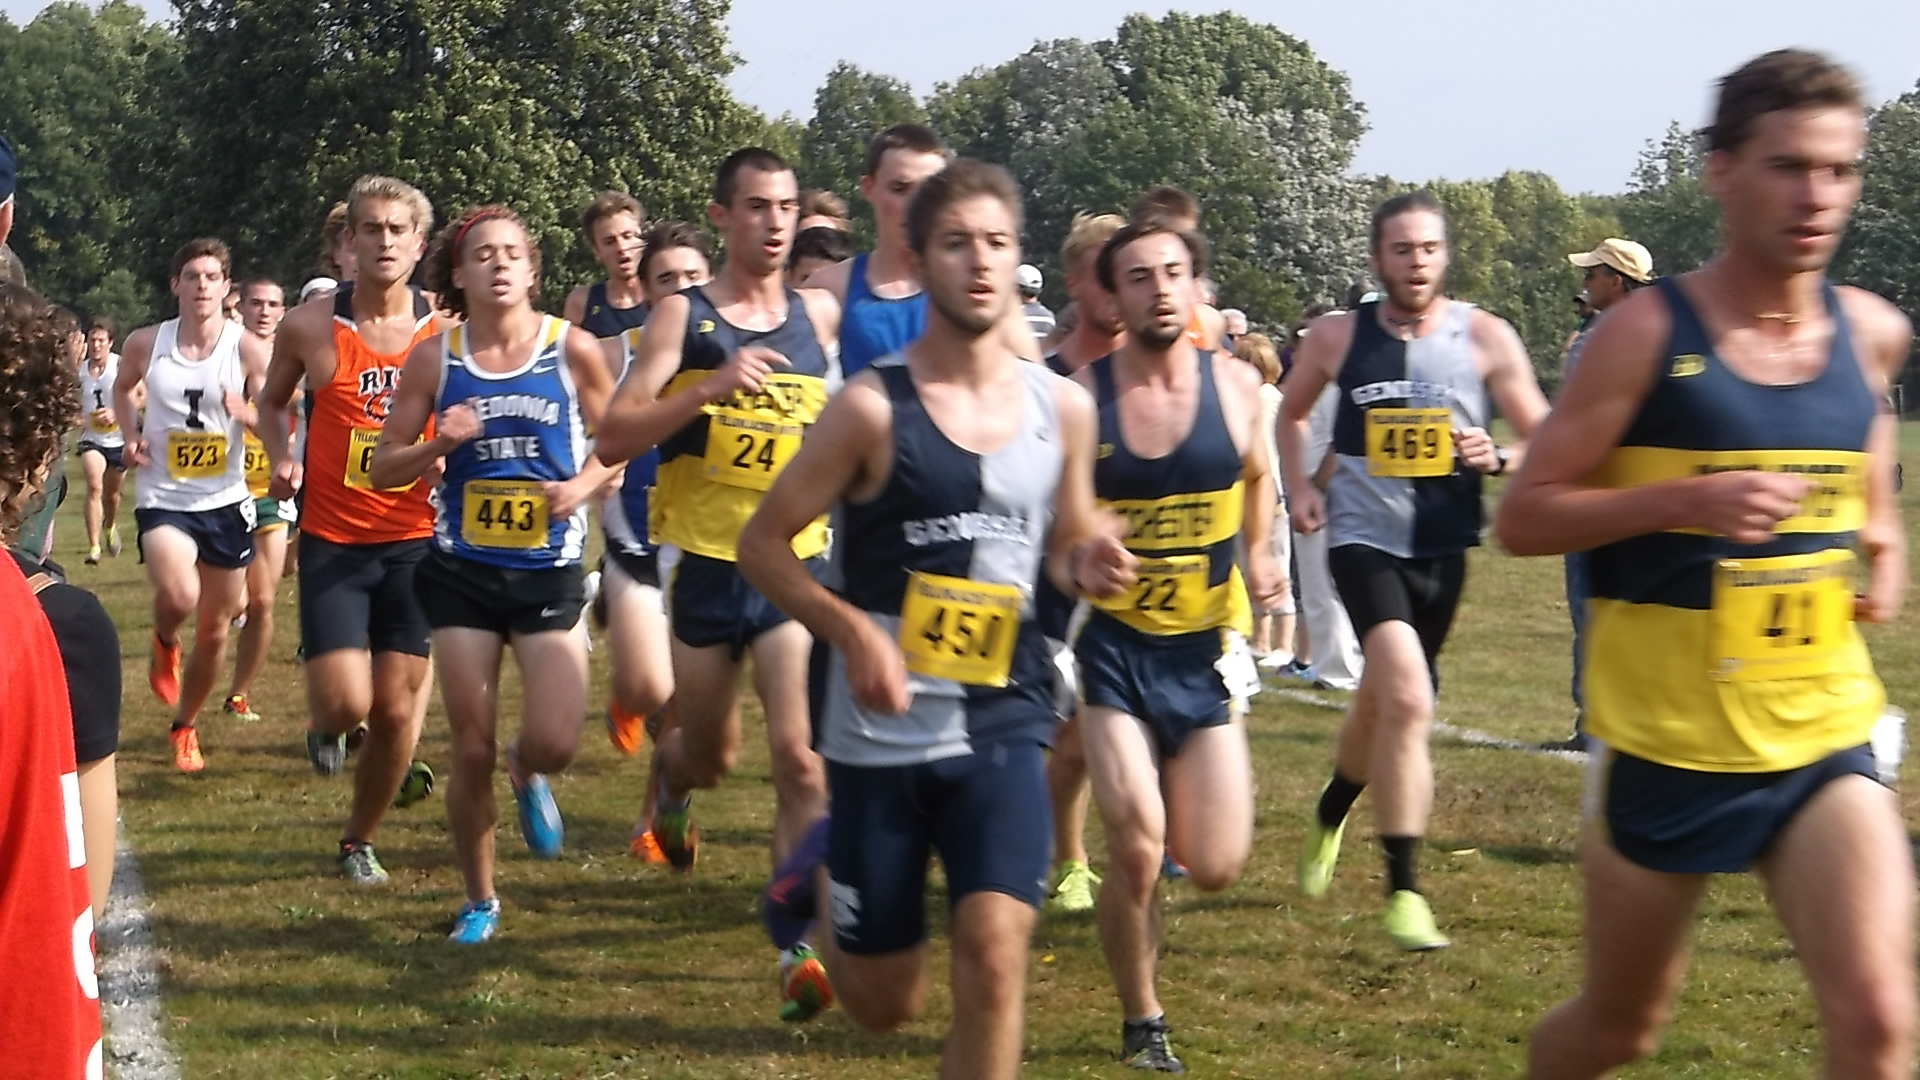 COLLEGIATE CROSS COUNTRY: SUNY Geneseo Shows Up Strong